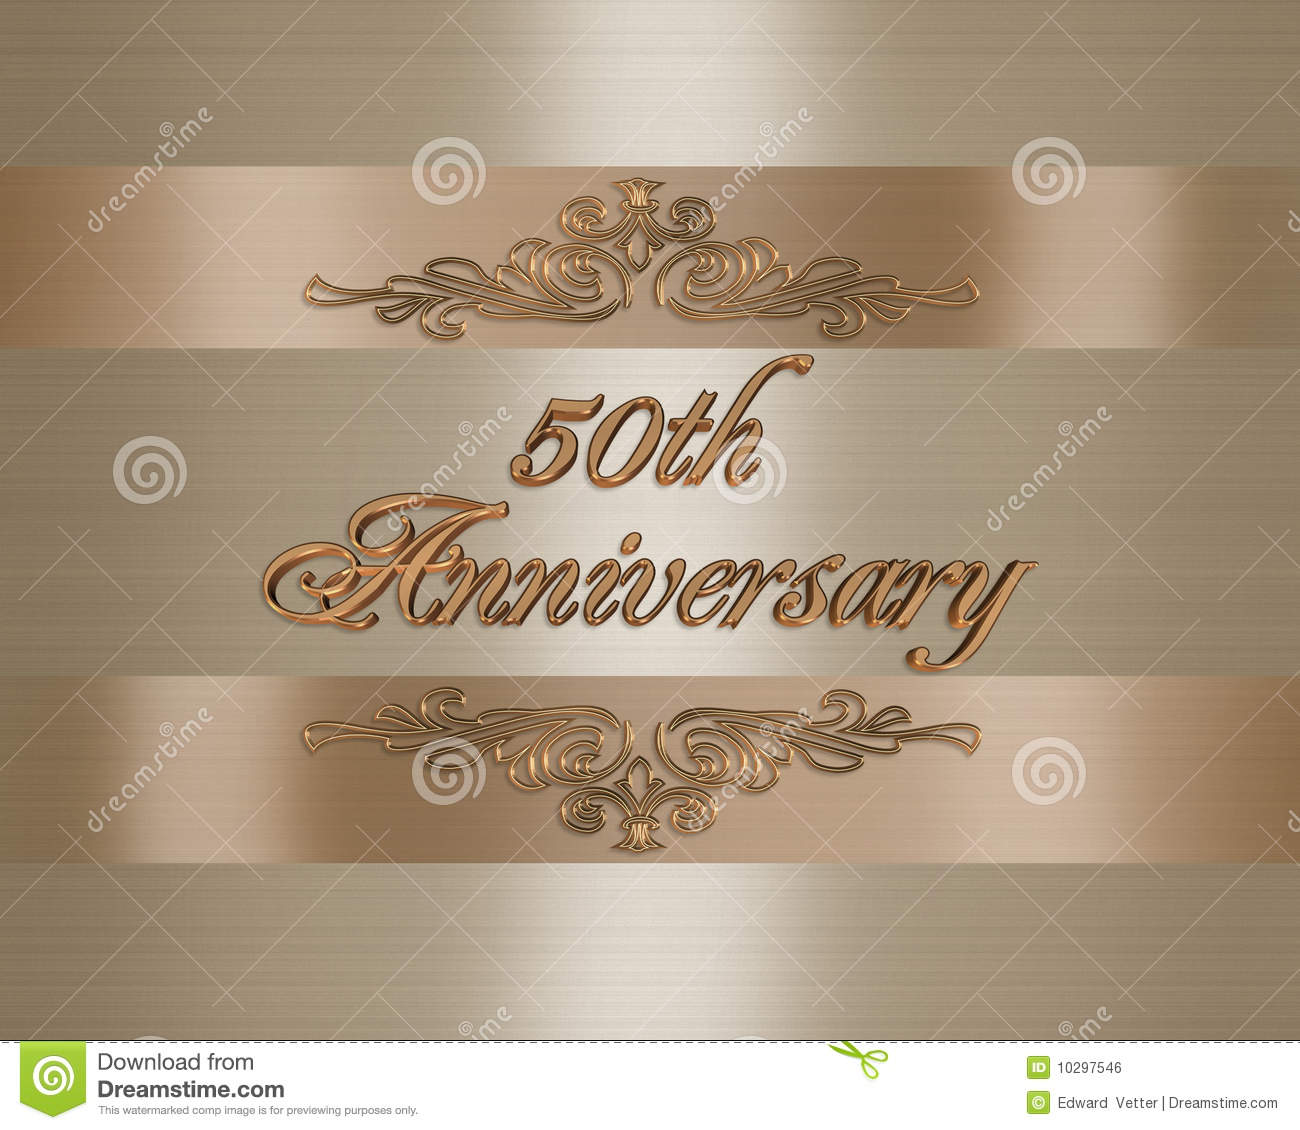 stock photography 50th wedding anniversary invitation image 50th wedding anniversary invitations 50th wedding Anniversary invitation Royalty Free Stock Image